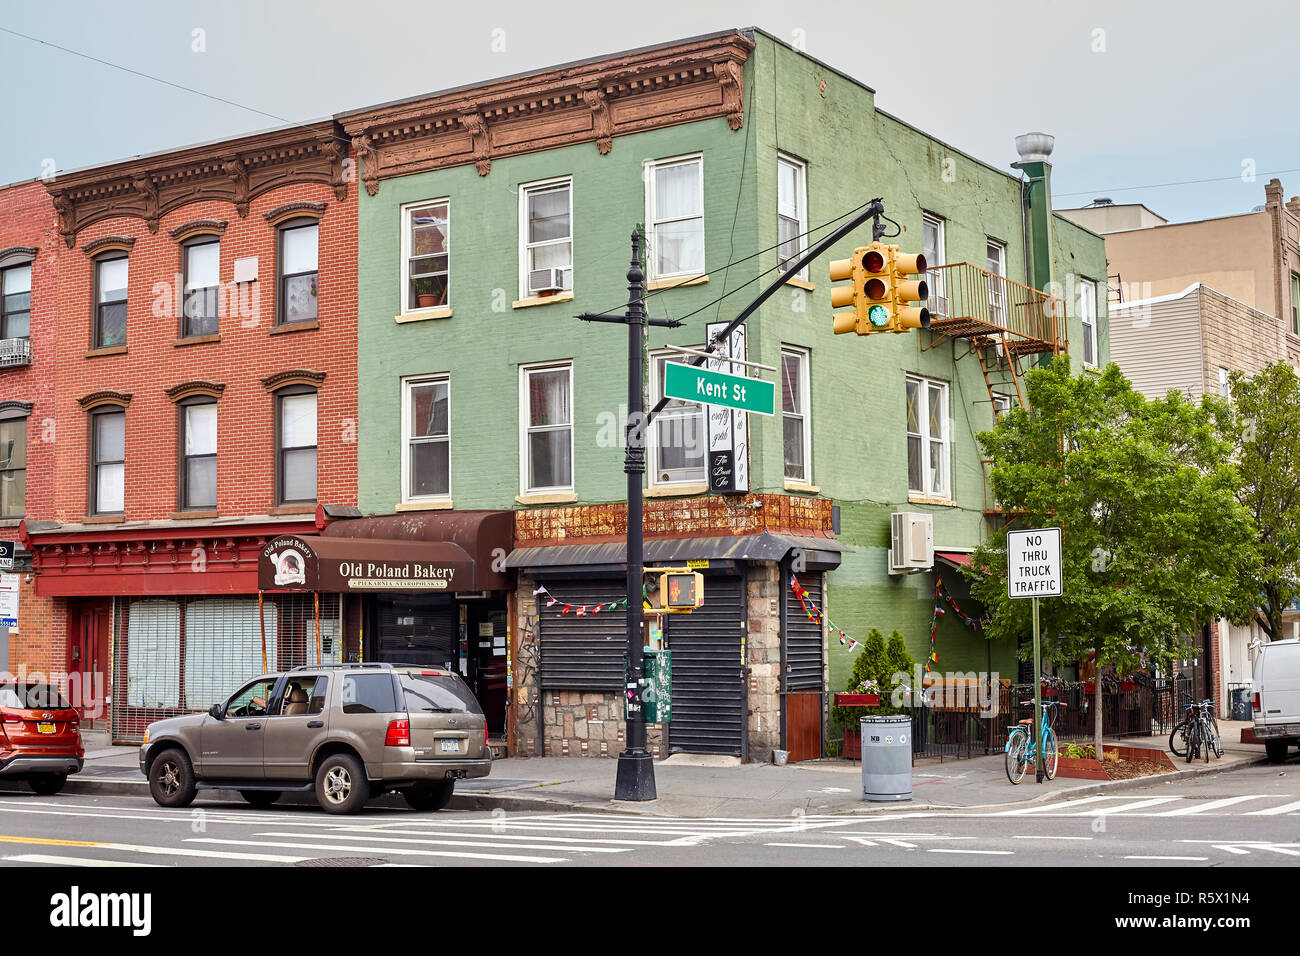 New York, USA - July 04, 2018: Kent Street in the Greenpoint neighborhood, also know as Little Poland, has a large Polish immigrant community with man - Stock Image